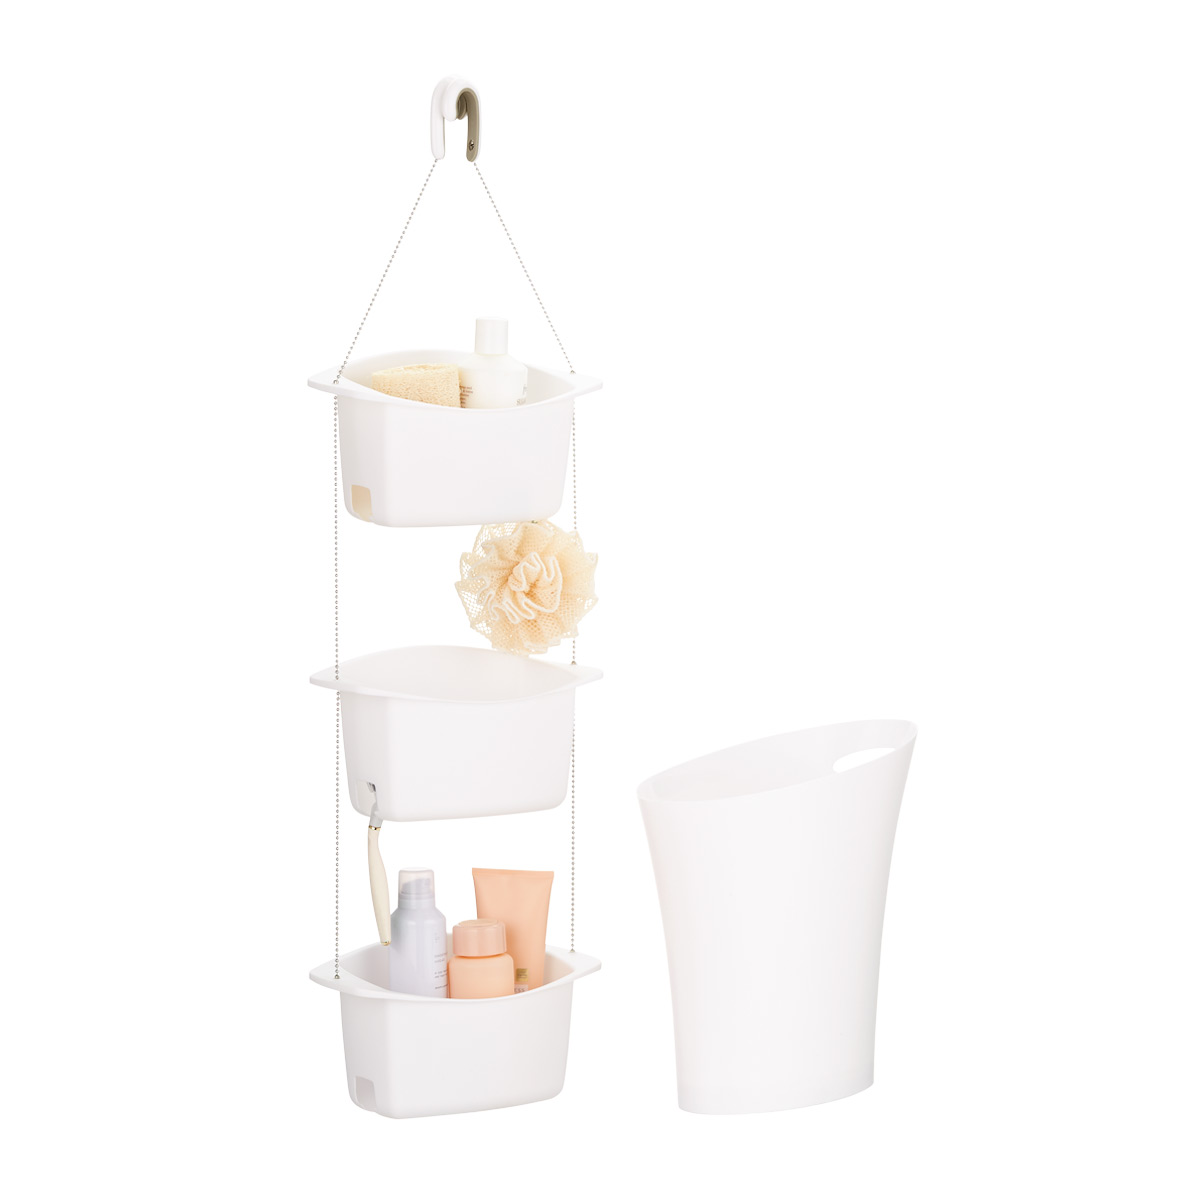 Umbra Oasis Shower Caddy and Skinny Trash Can